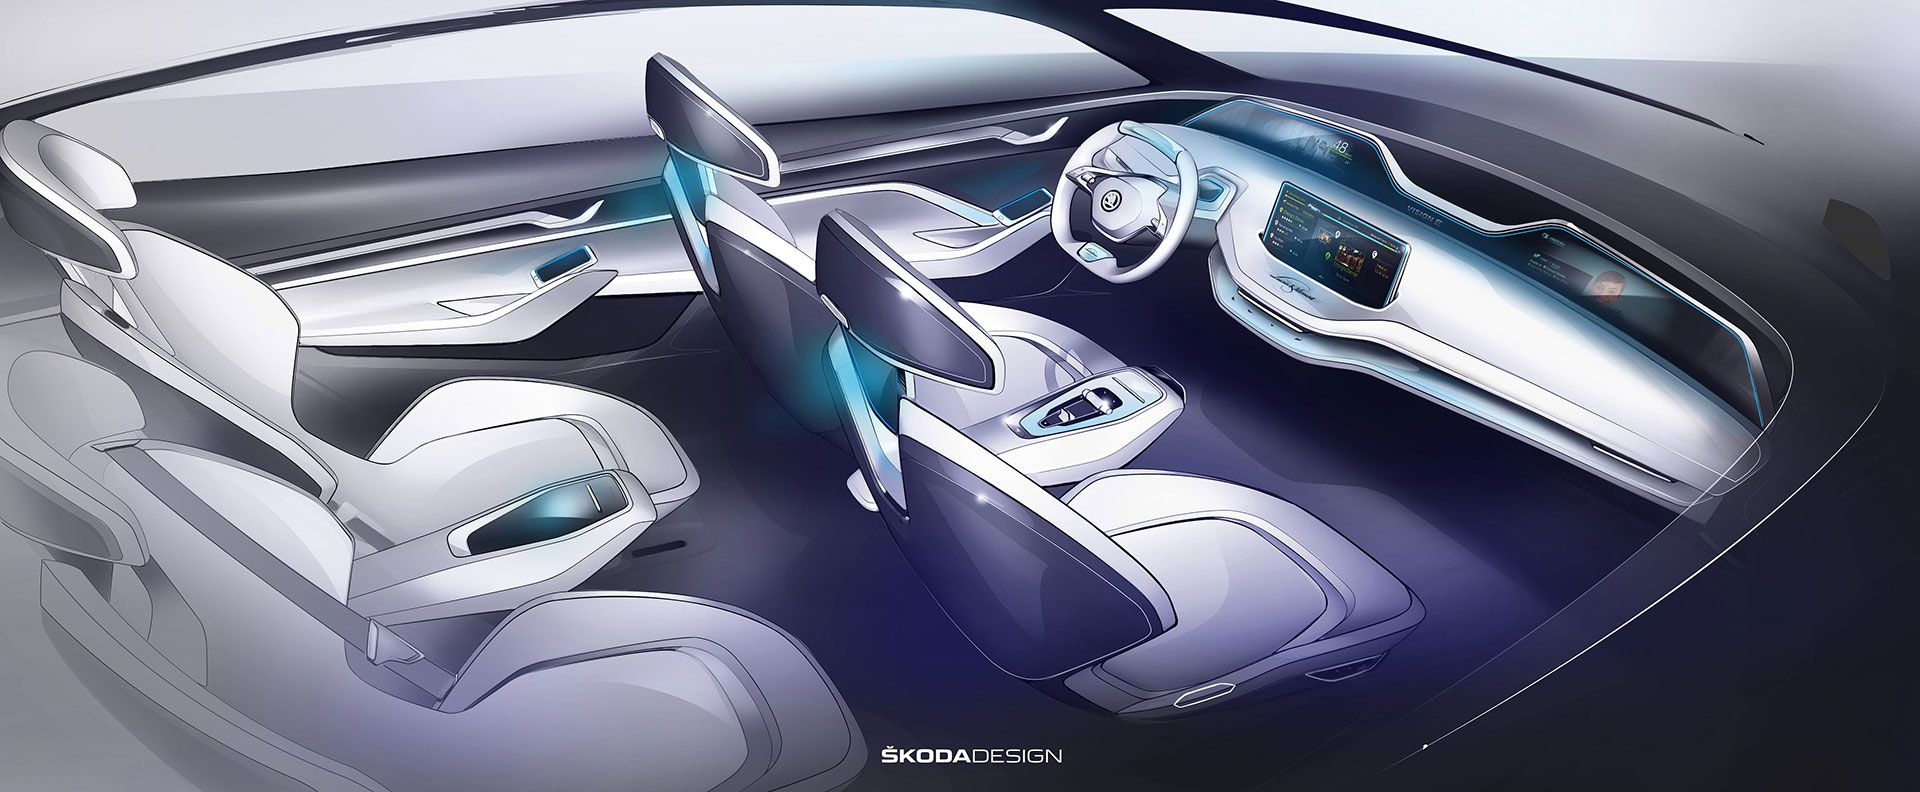 Skoda Vision E Concept Interior Design Sketch Render Car Design